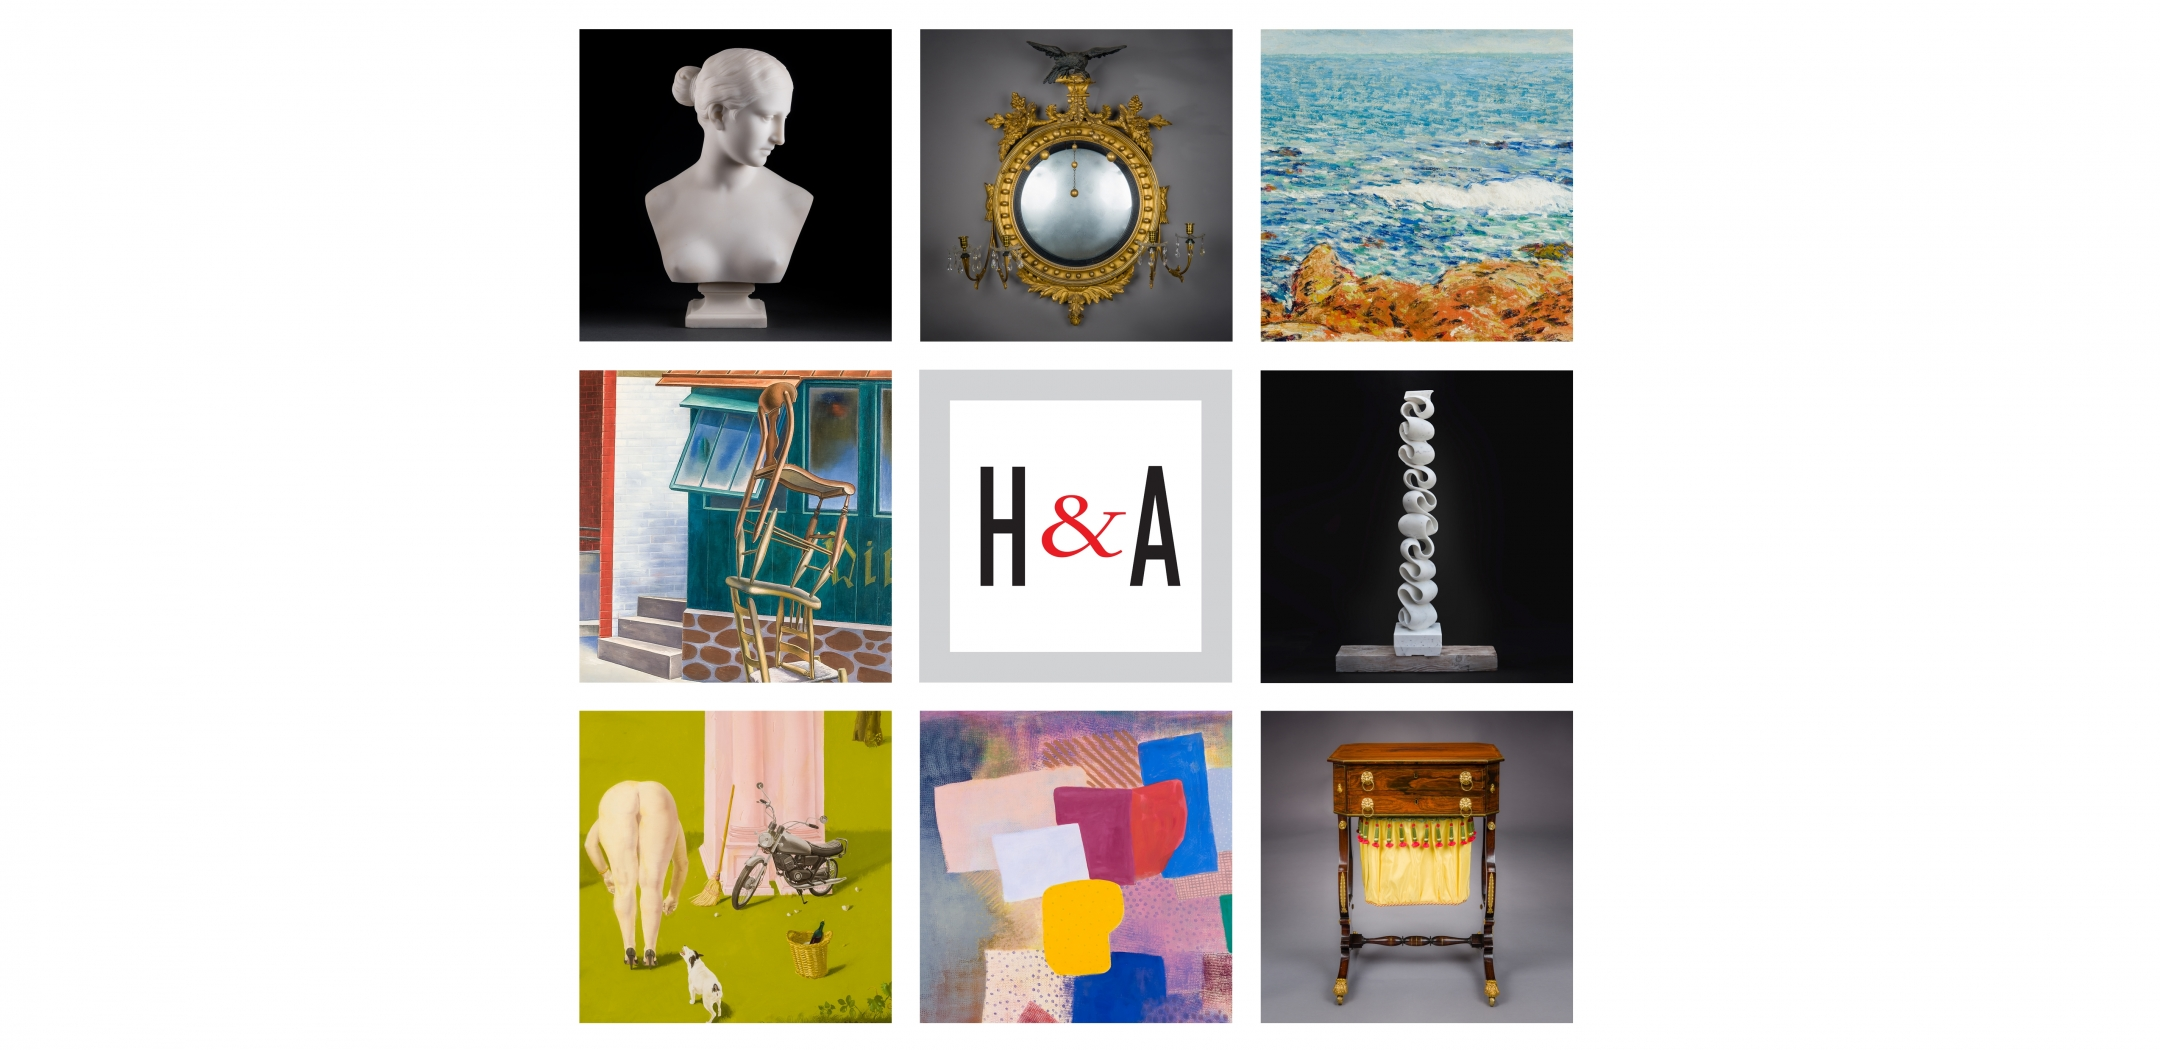 """3 x 3 grid with square details (clockwise from upper left): Hiram Powers, """"Bust of the Greek Slave;"""" American, probably Salem, Massachusetts, """"Convex Girandole Mirror;"""" Childe Hassam, """"Seascape: Isles of Shoals;"""" Elizabeth Turk, """"Script: Column 9;"""" Thomas Seymour, Boston, """"Work Table with Lyre Ends;"""" Robert Natkin, """"Untitled, Hitchcock;"""" Honore Sharrer, """"Roman Landscape;"""" O. Louis Guglielmi, """"Tumblers."""" Center tile: square Hirschl & Adler logo with red ampersand."""